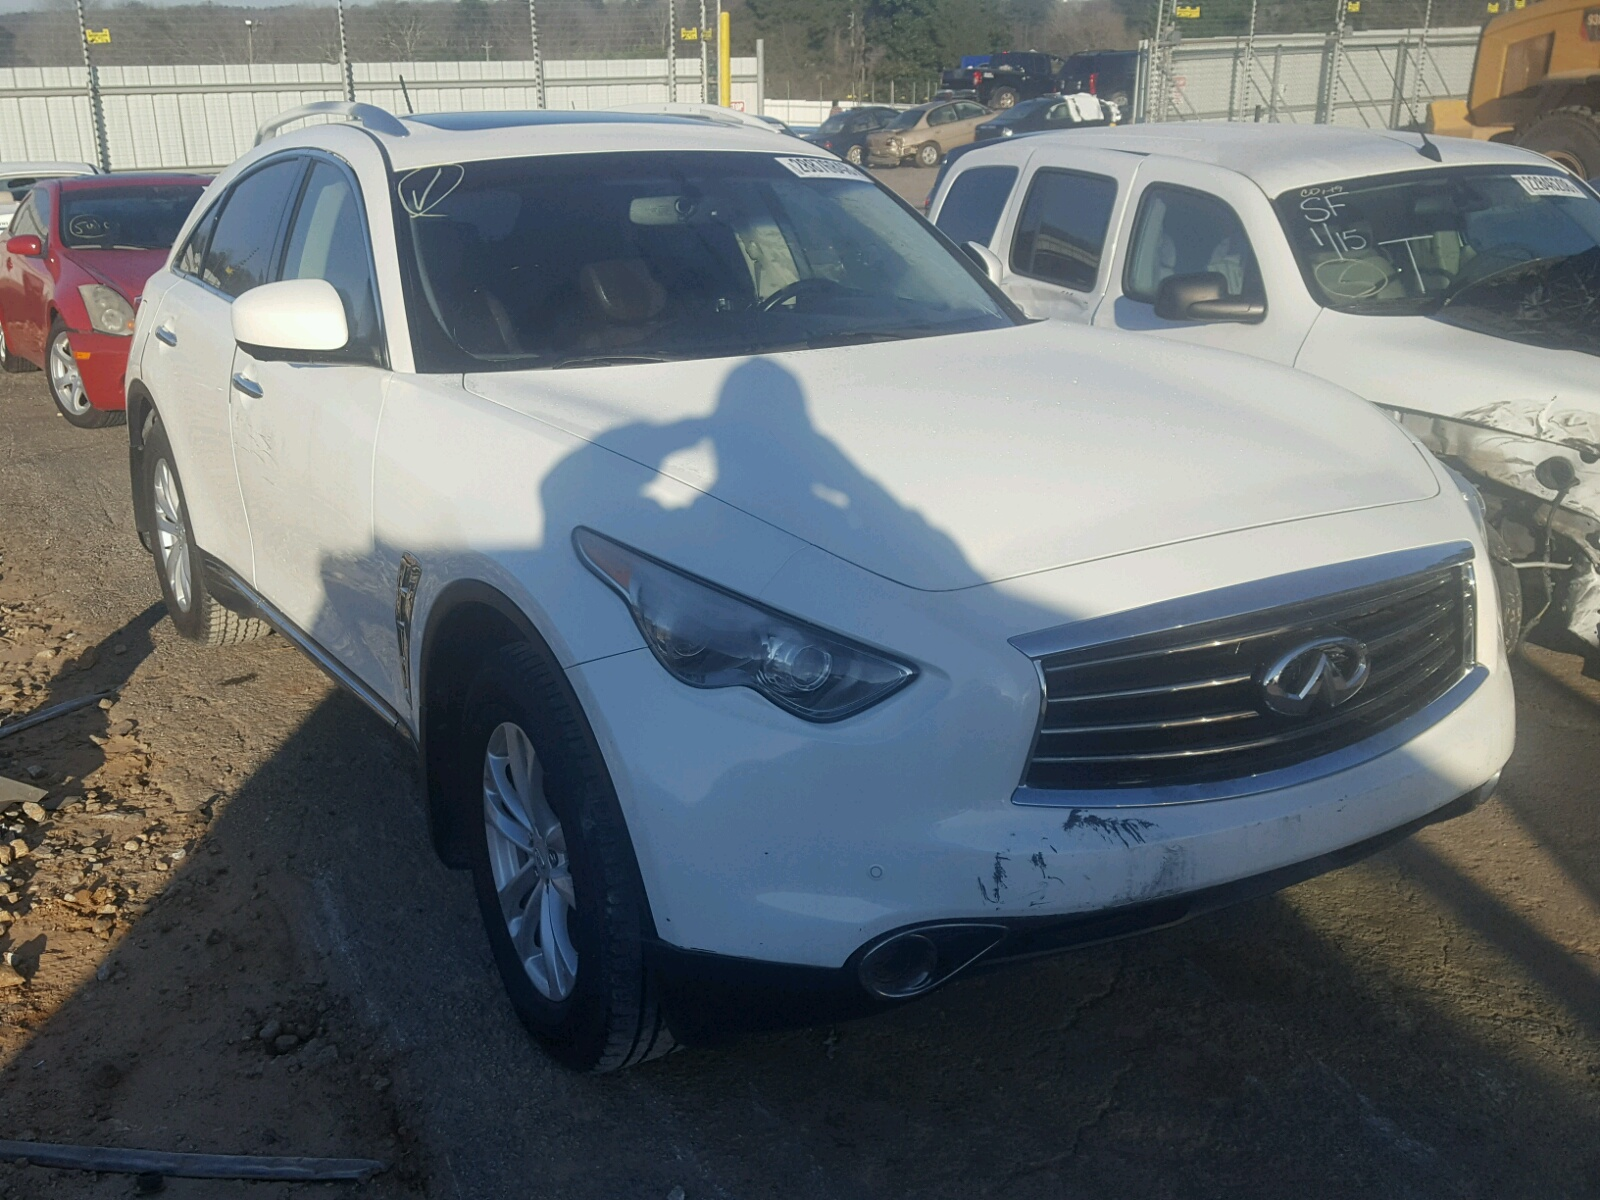 JN8AS1MU4CM120497   2012 INFINITI FX35 3.5L Left View